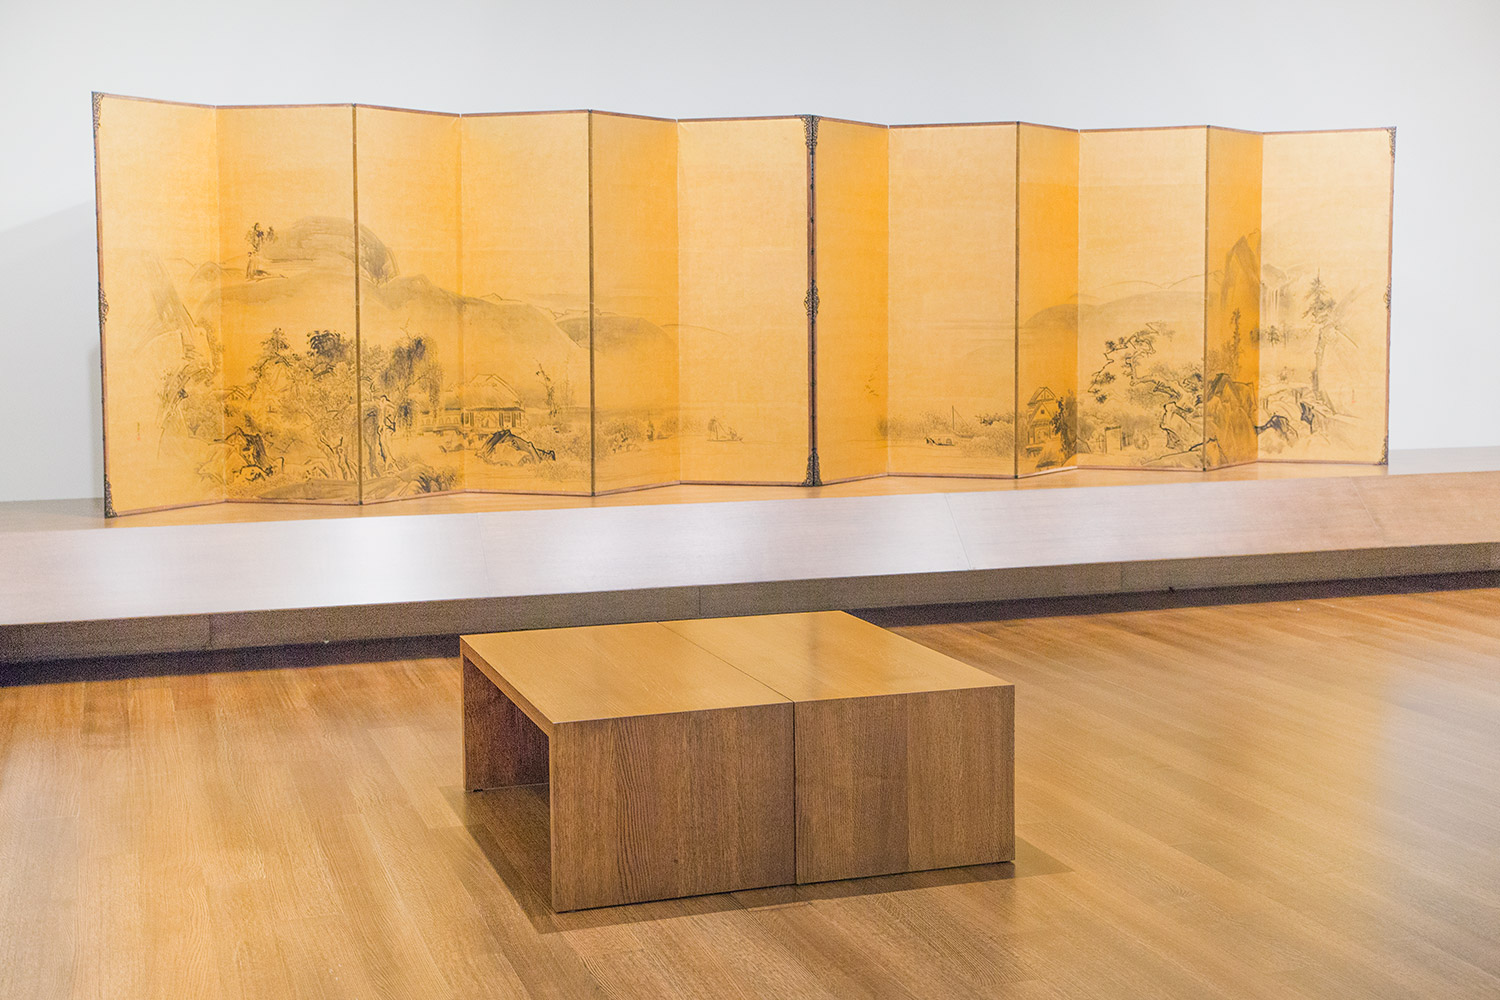 """Watanabe Shikō, """"Landscape,"""" early 18th century. Screen painting. Promised gift of Robert S. and Betsy G. Feinberg."""